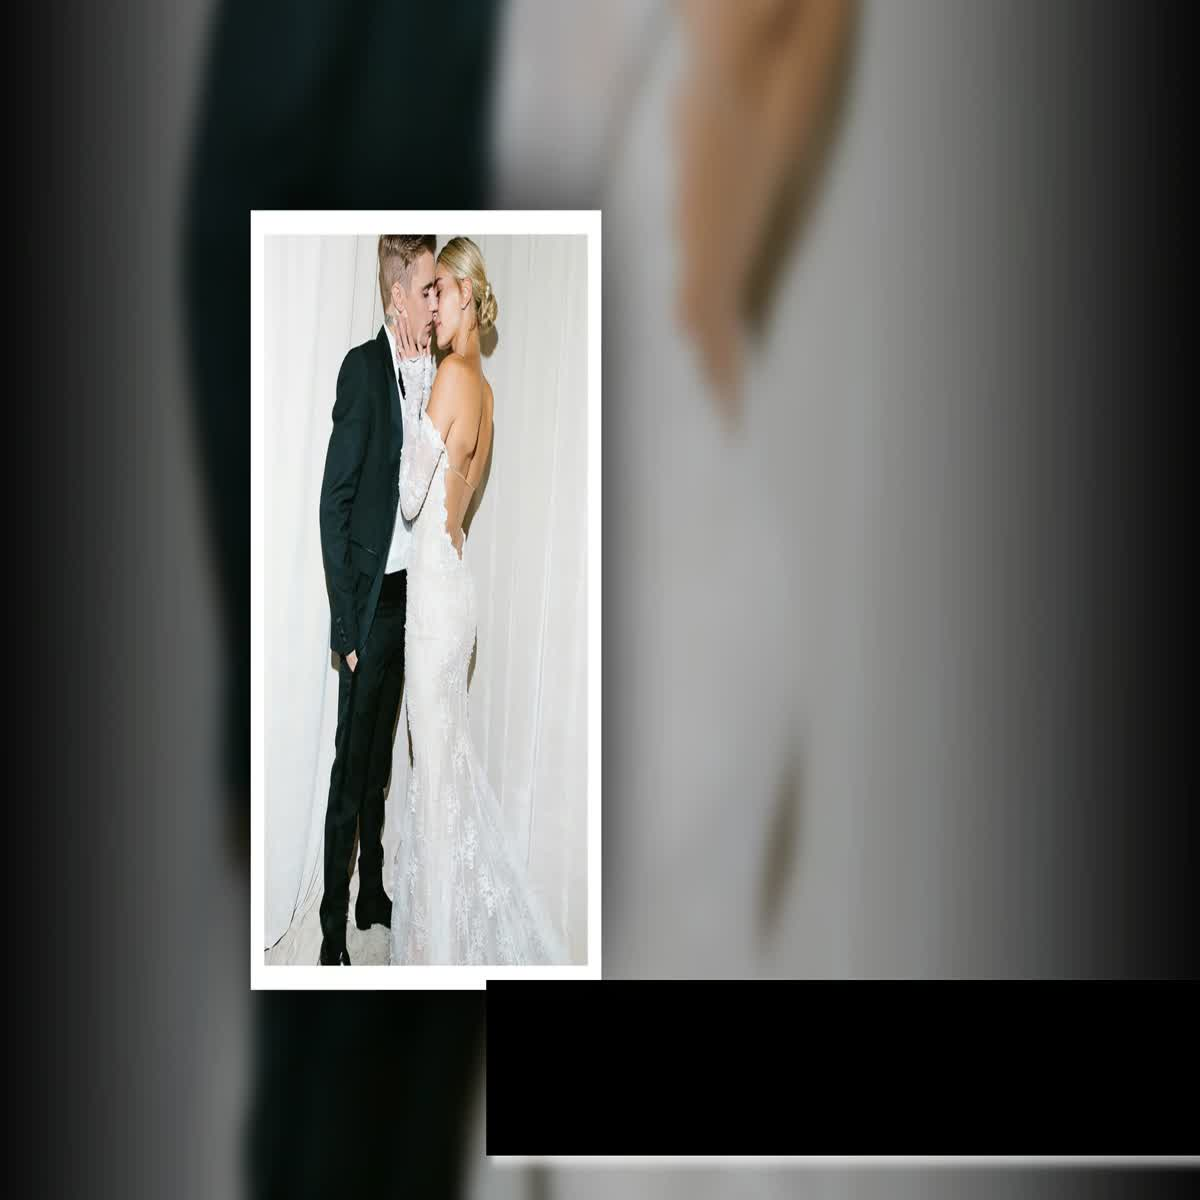 I will create amazing wedding slideshow video from your images